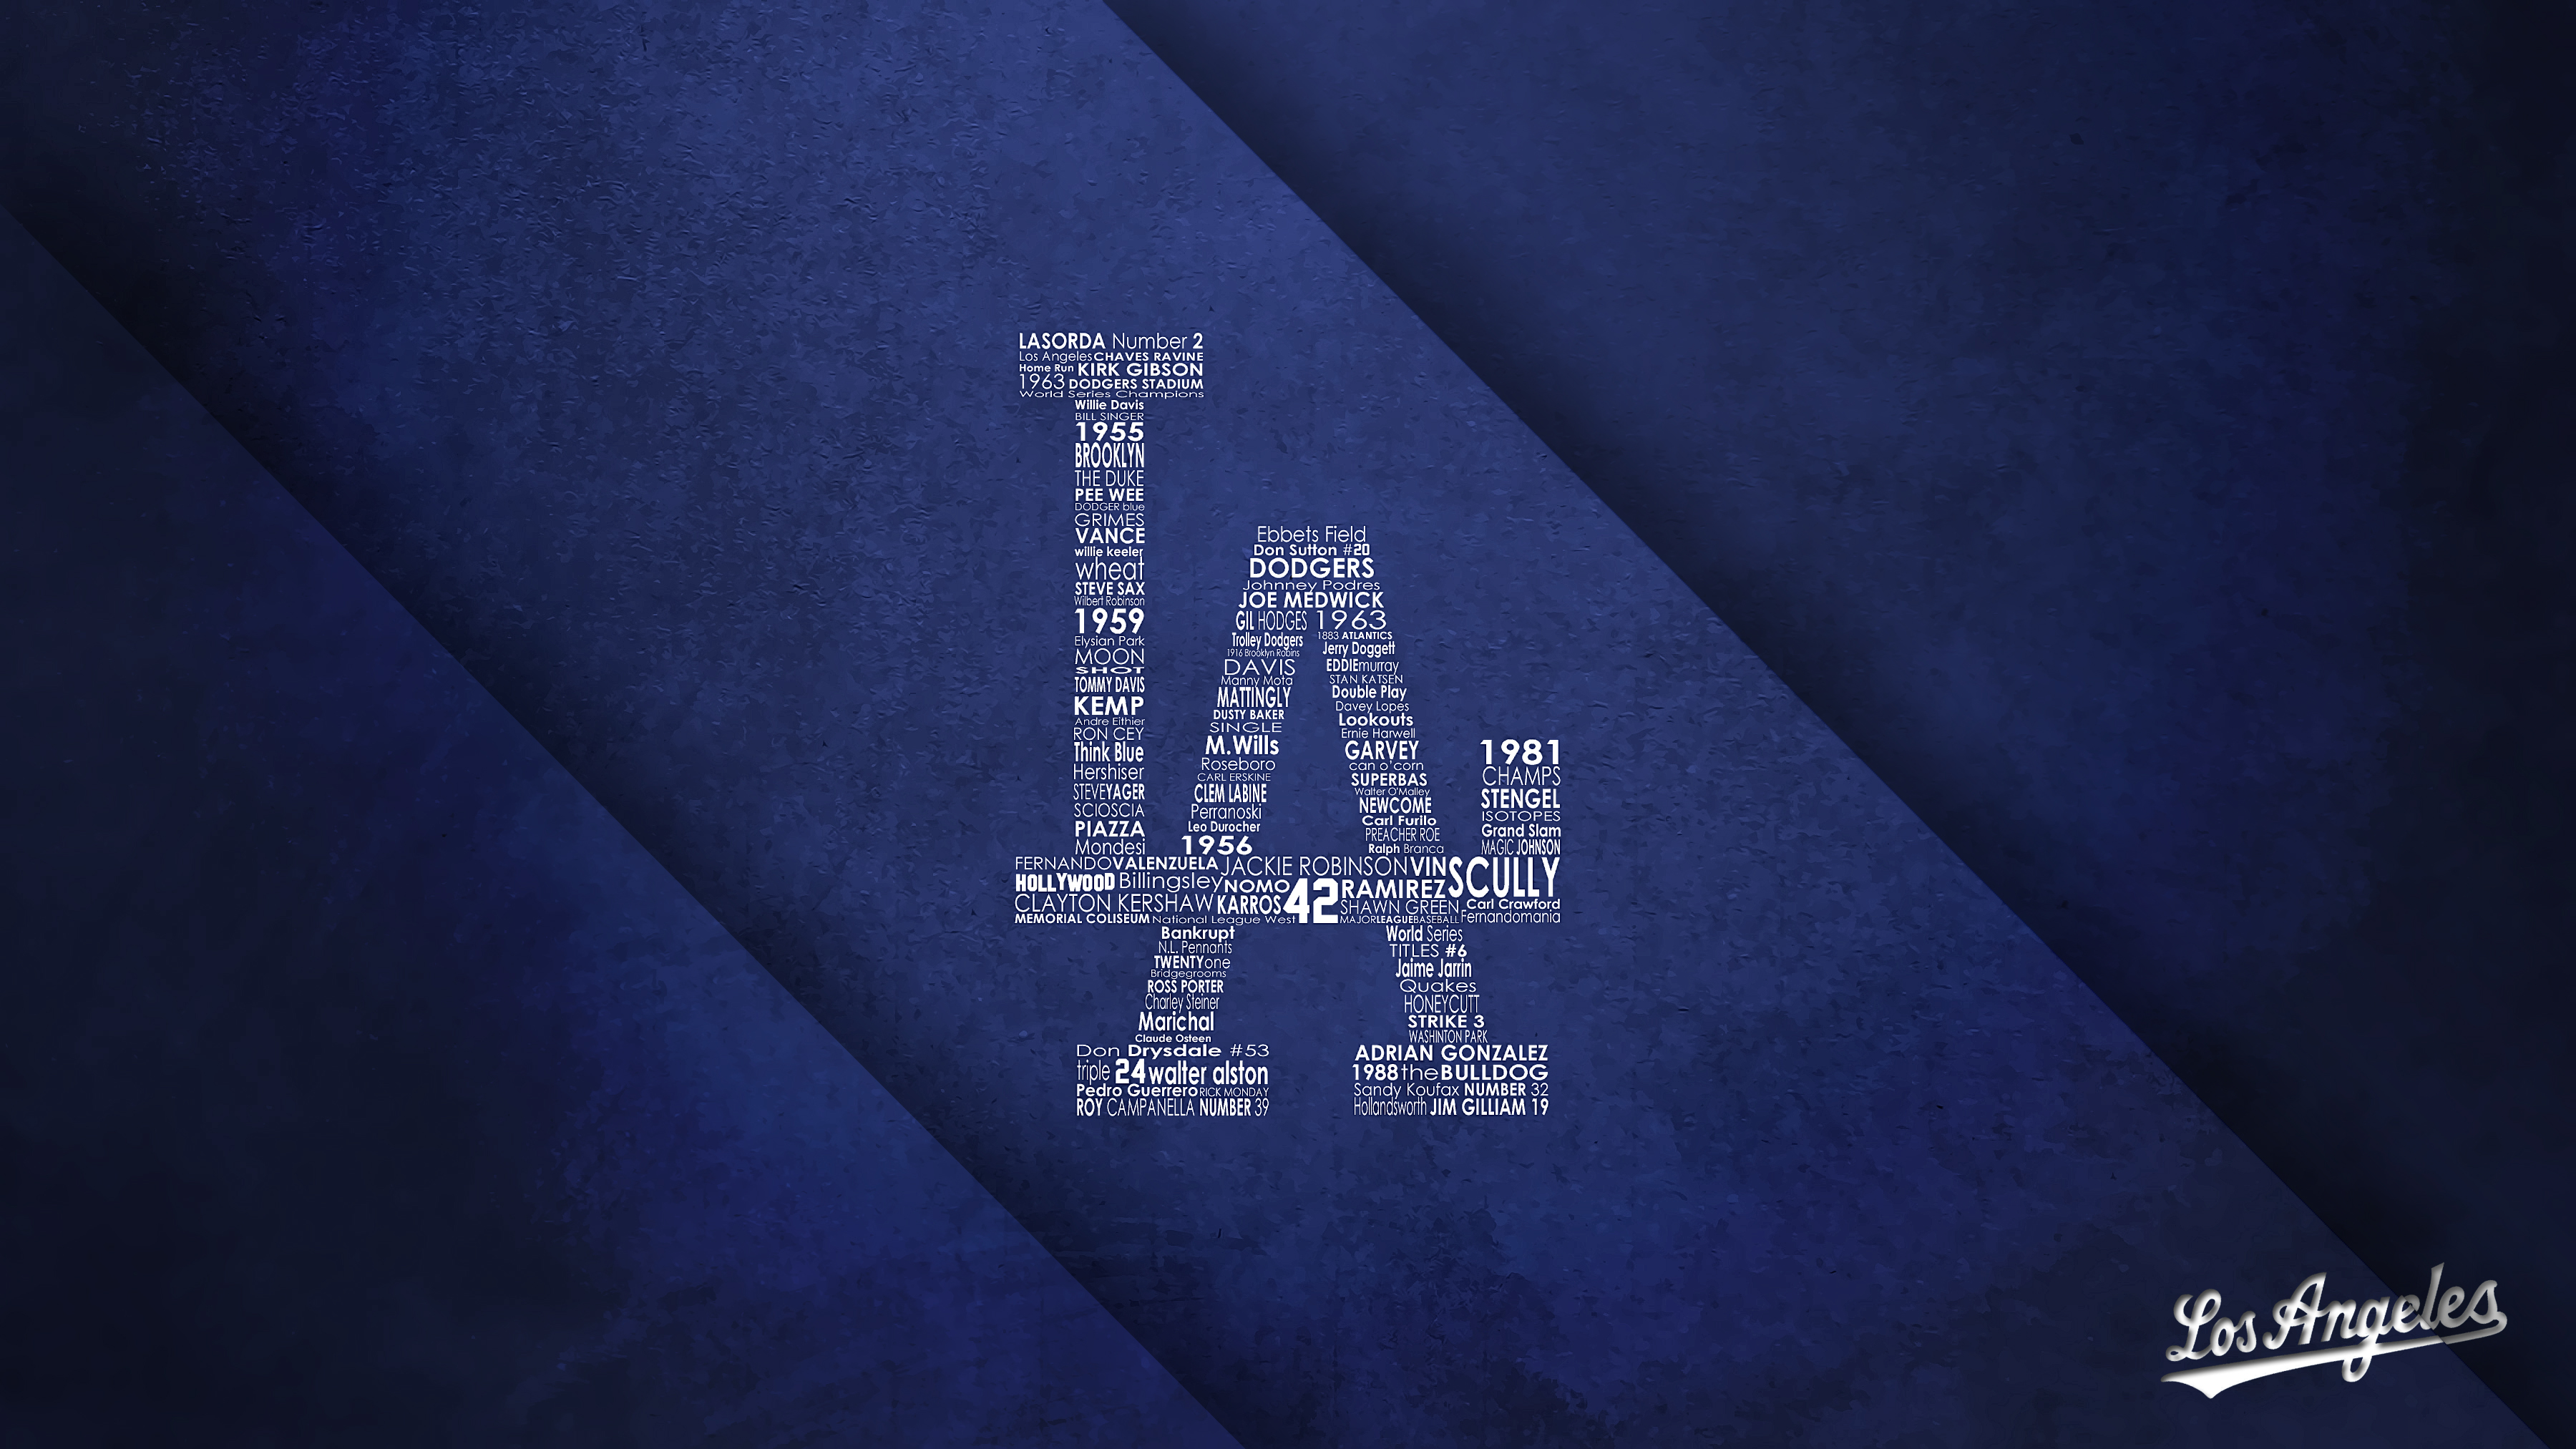 dodgers logo backgrounds page 2 of 3 wallpaper